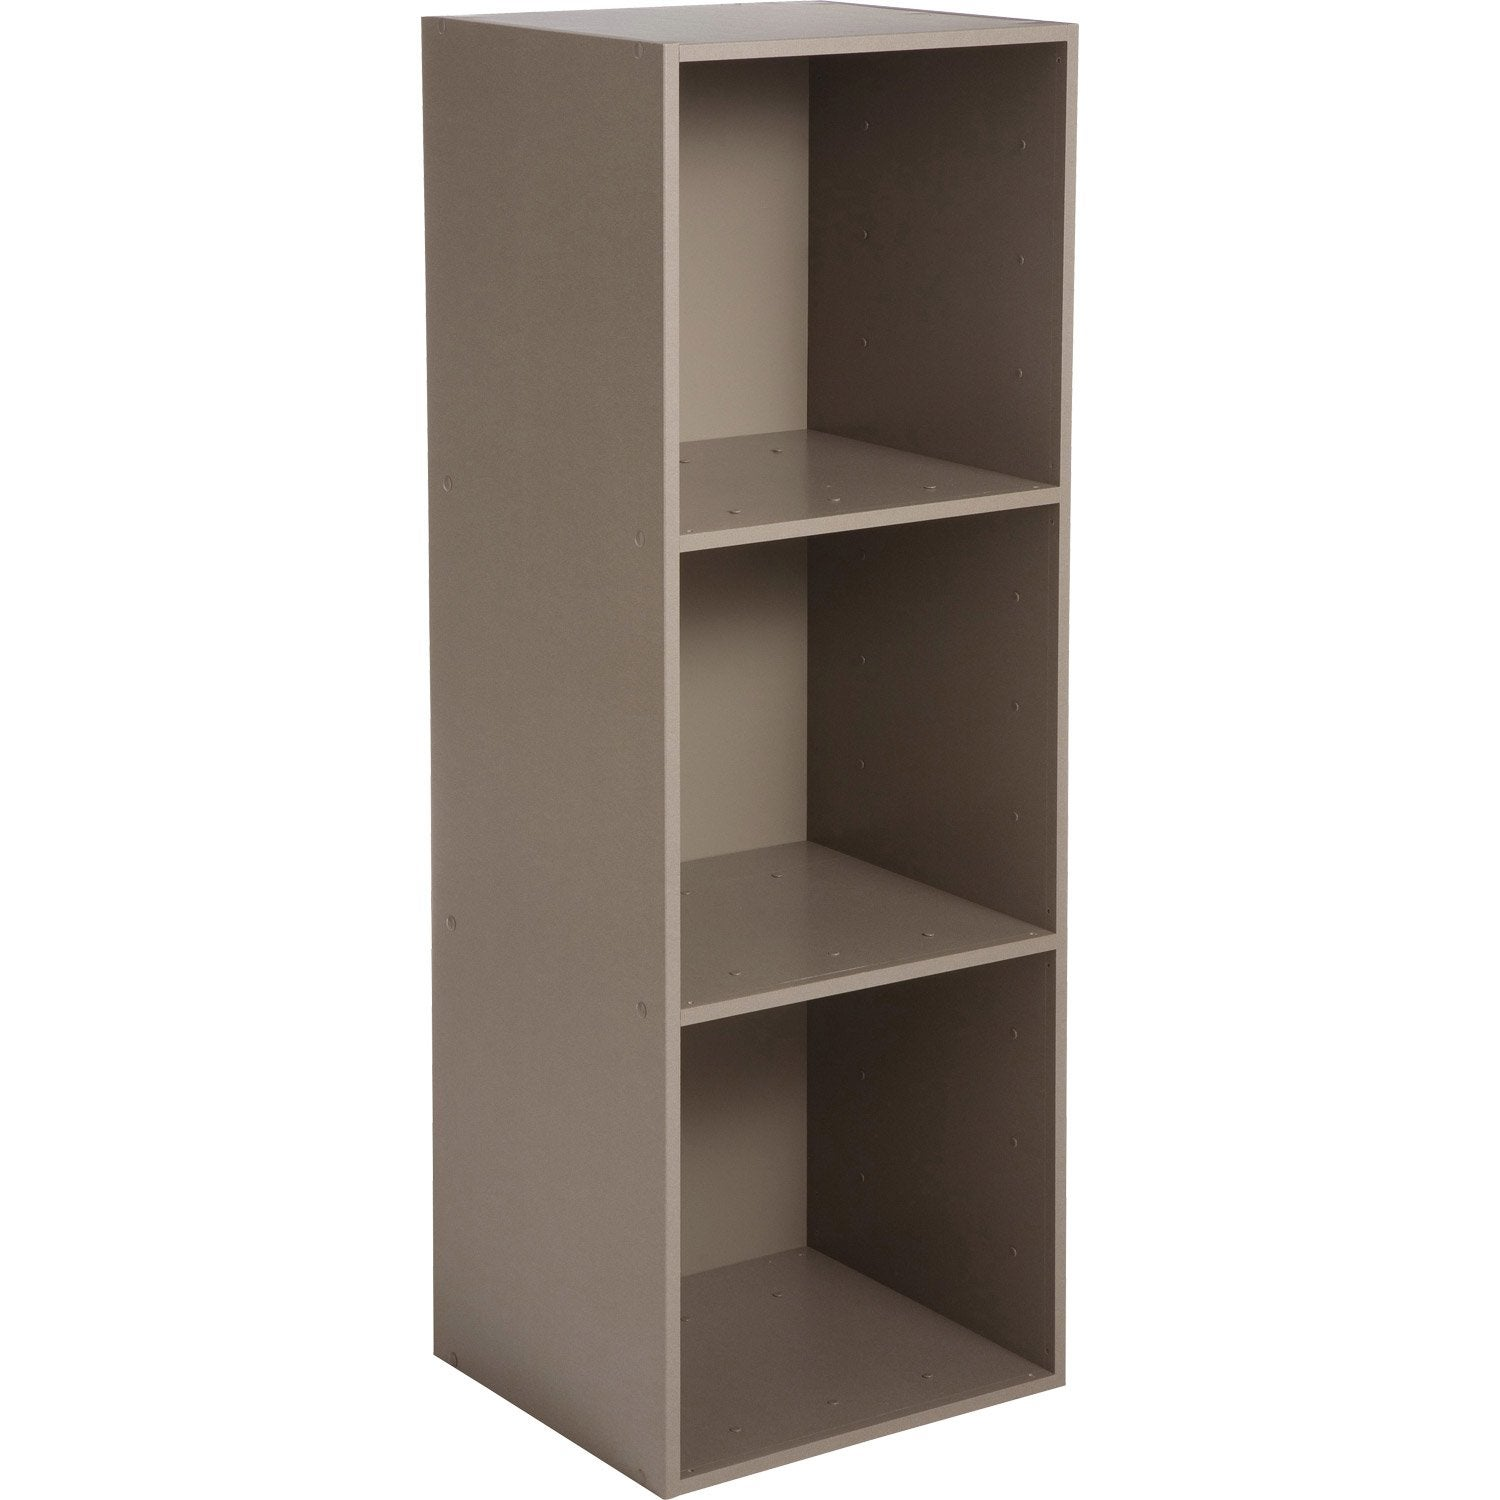 Etag re 3 cases multikaz taupe x x - Etagere chaussure leroy merlin ...